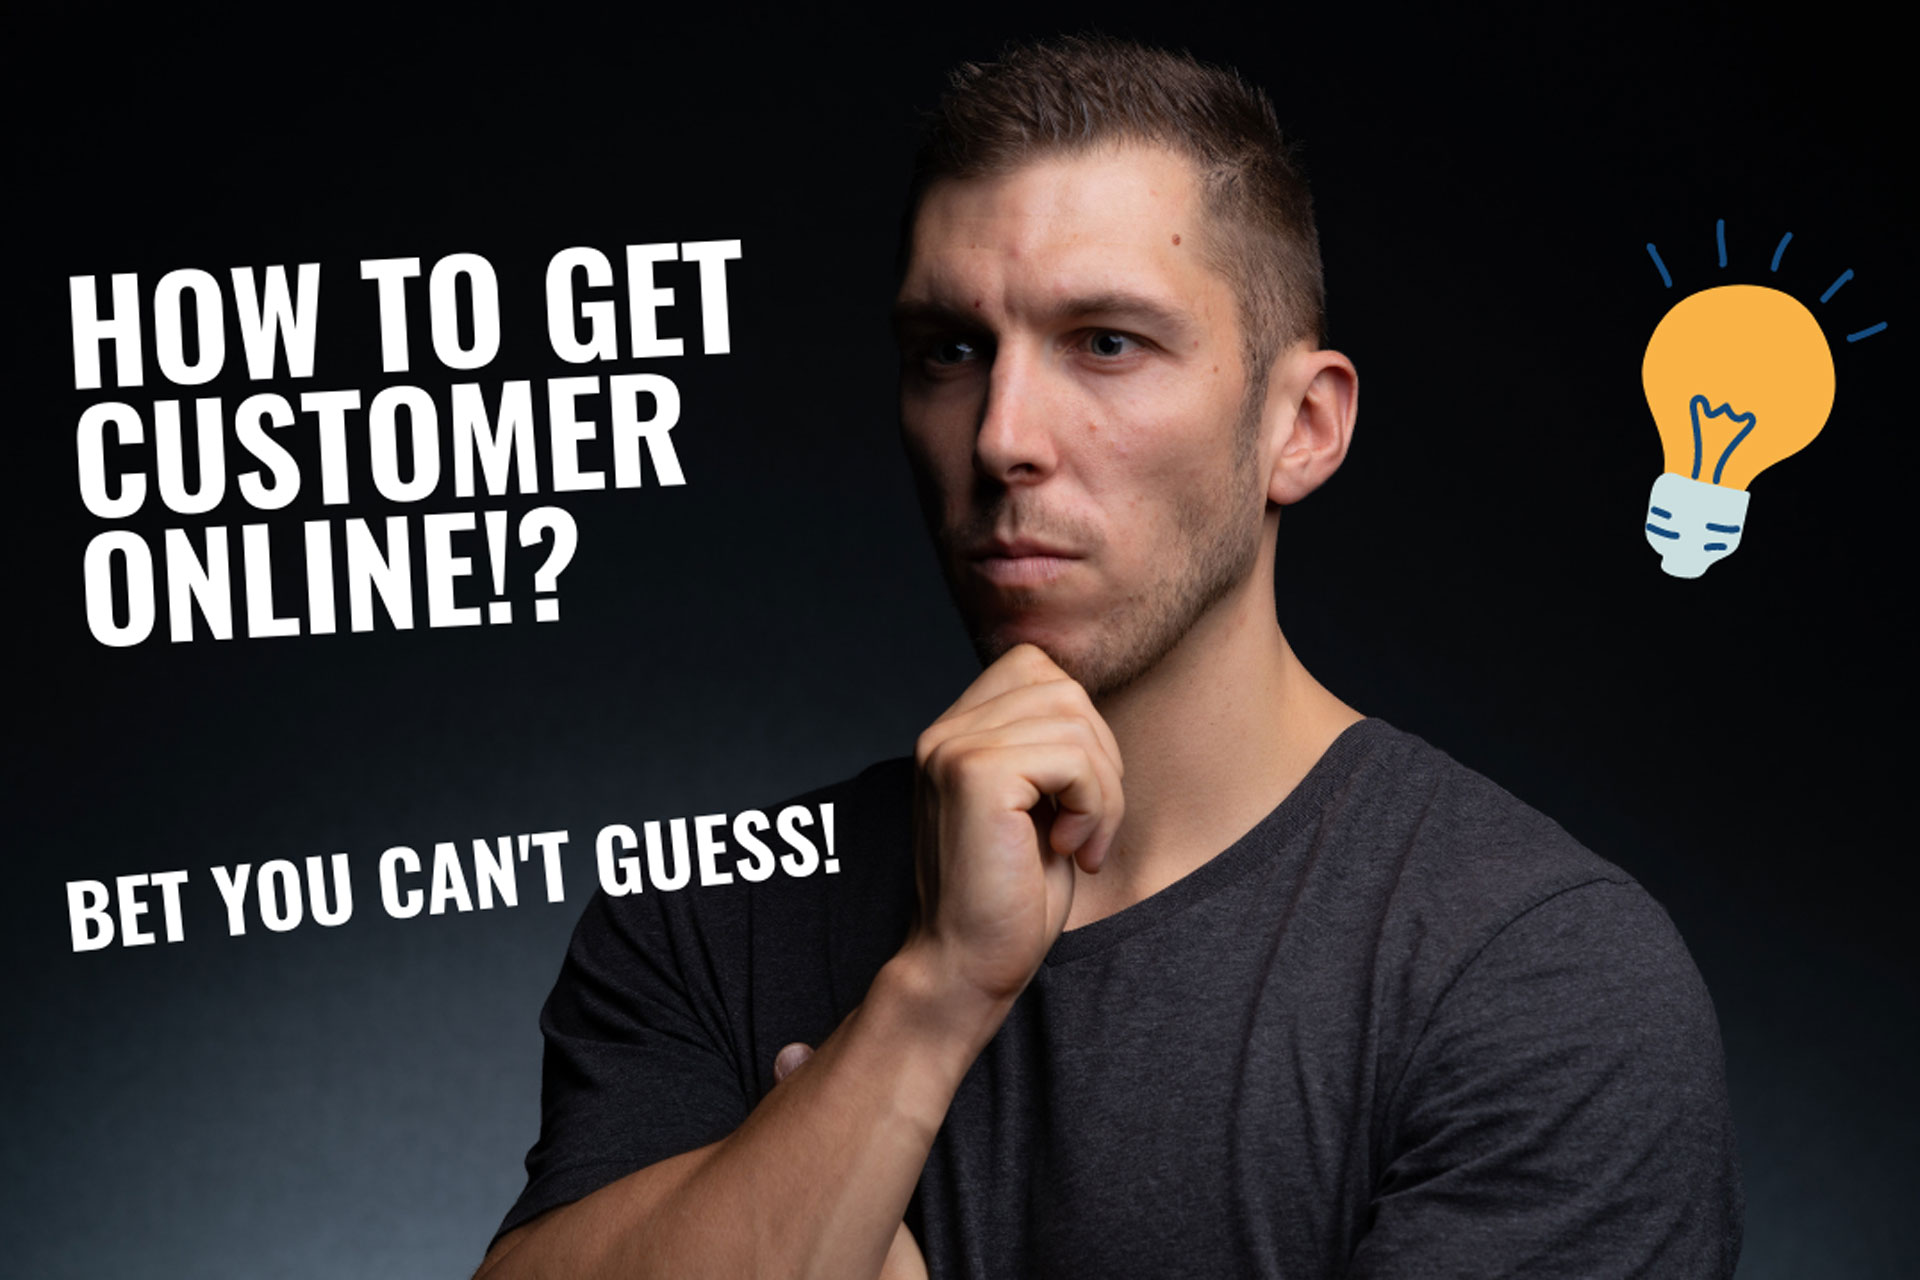 provide value to customer marketing content thumbnail